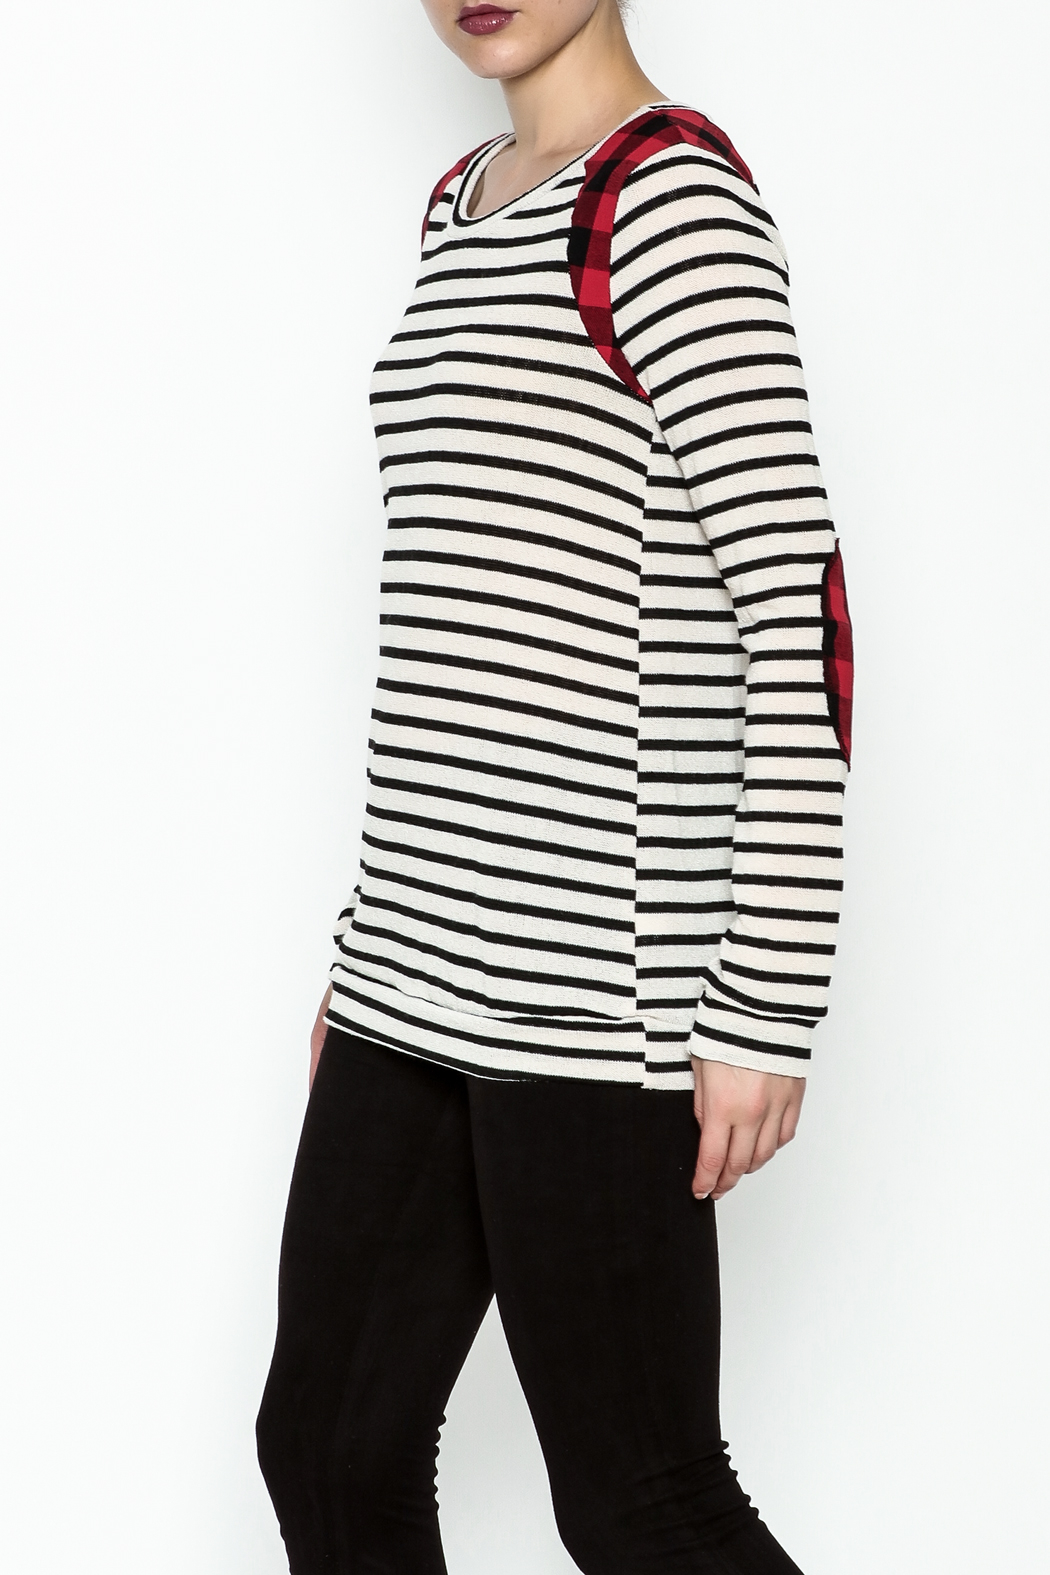 12pm by Mon Ami Kerri Stripe Top - Front Cropped Image